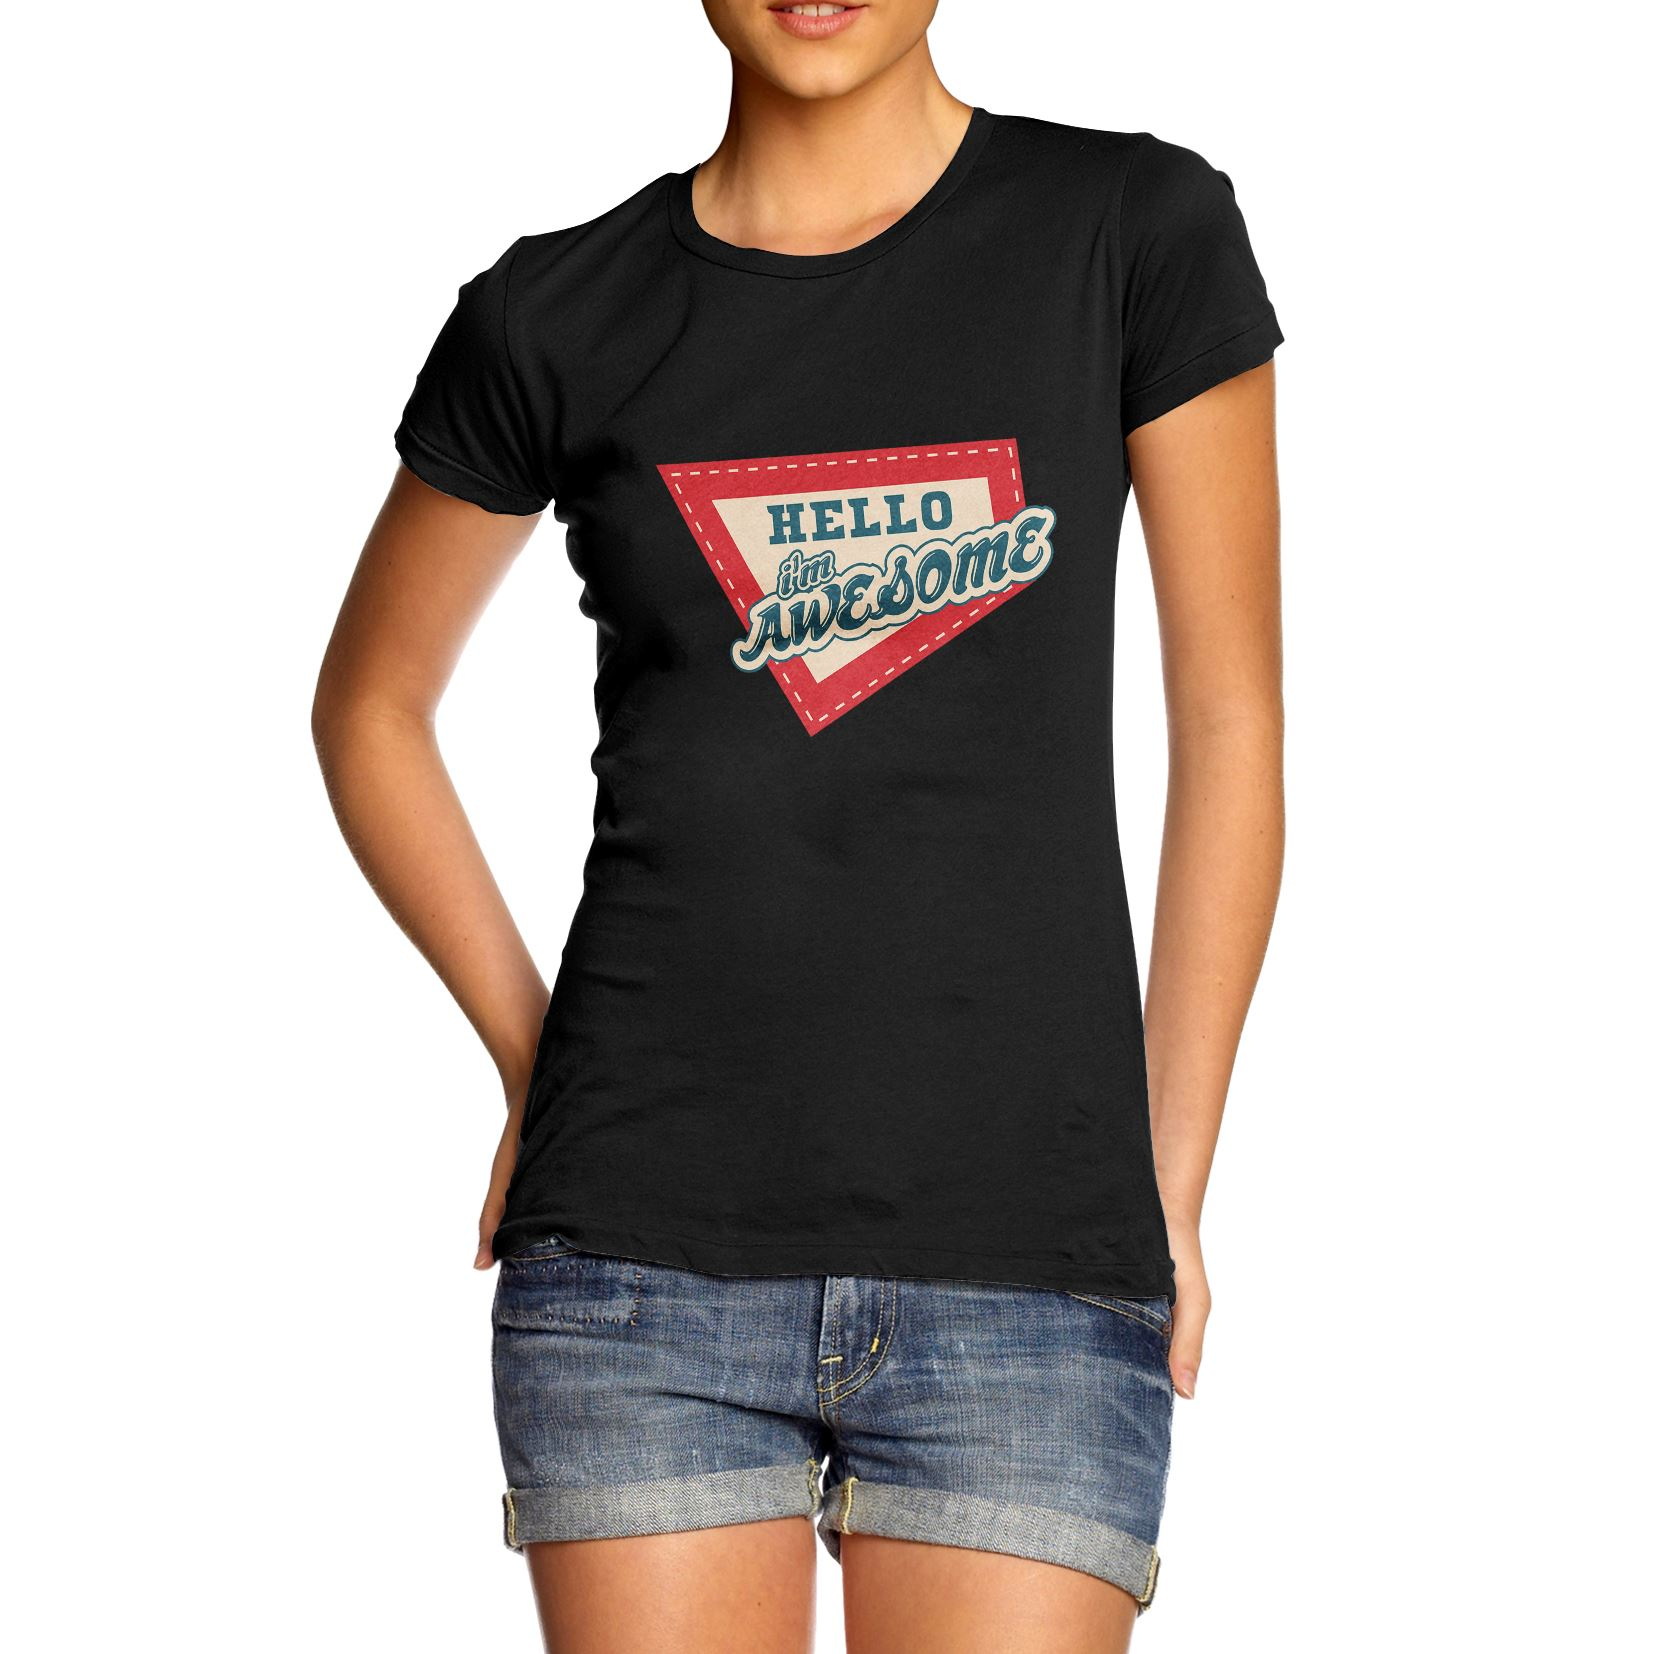 5fea235b7656 Details about Twisted Envy Women's Hello I'm Awesome Funny T-Shirt